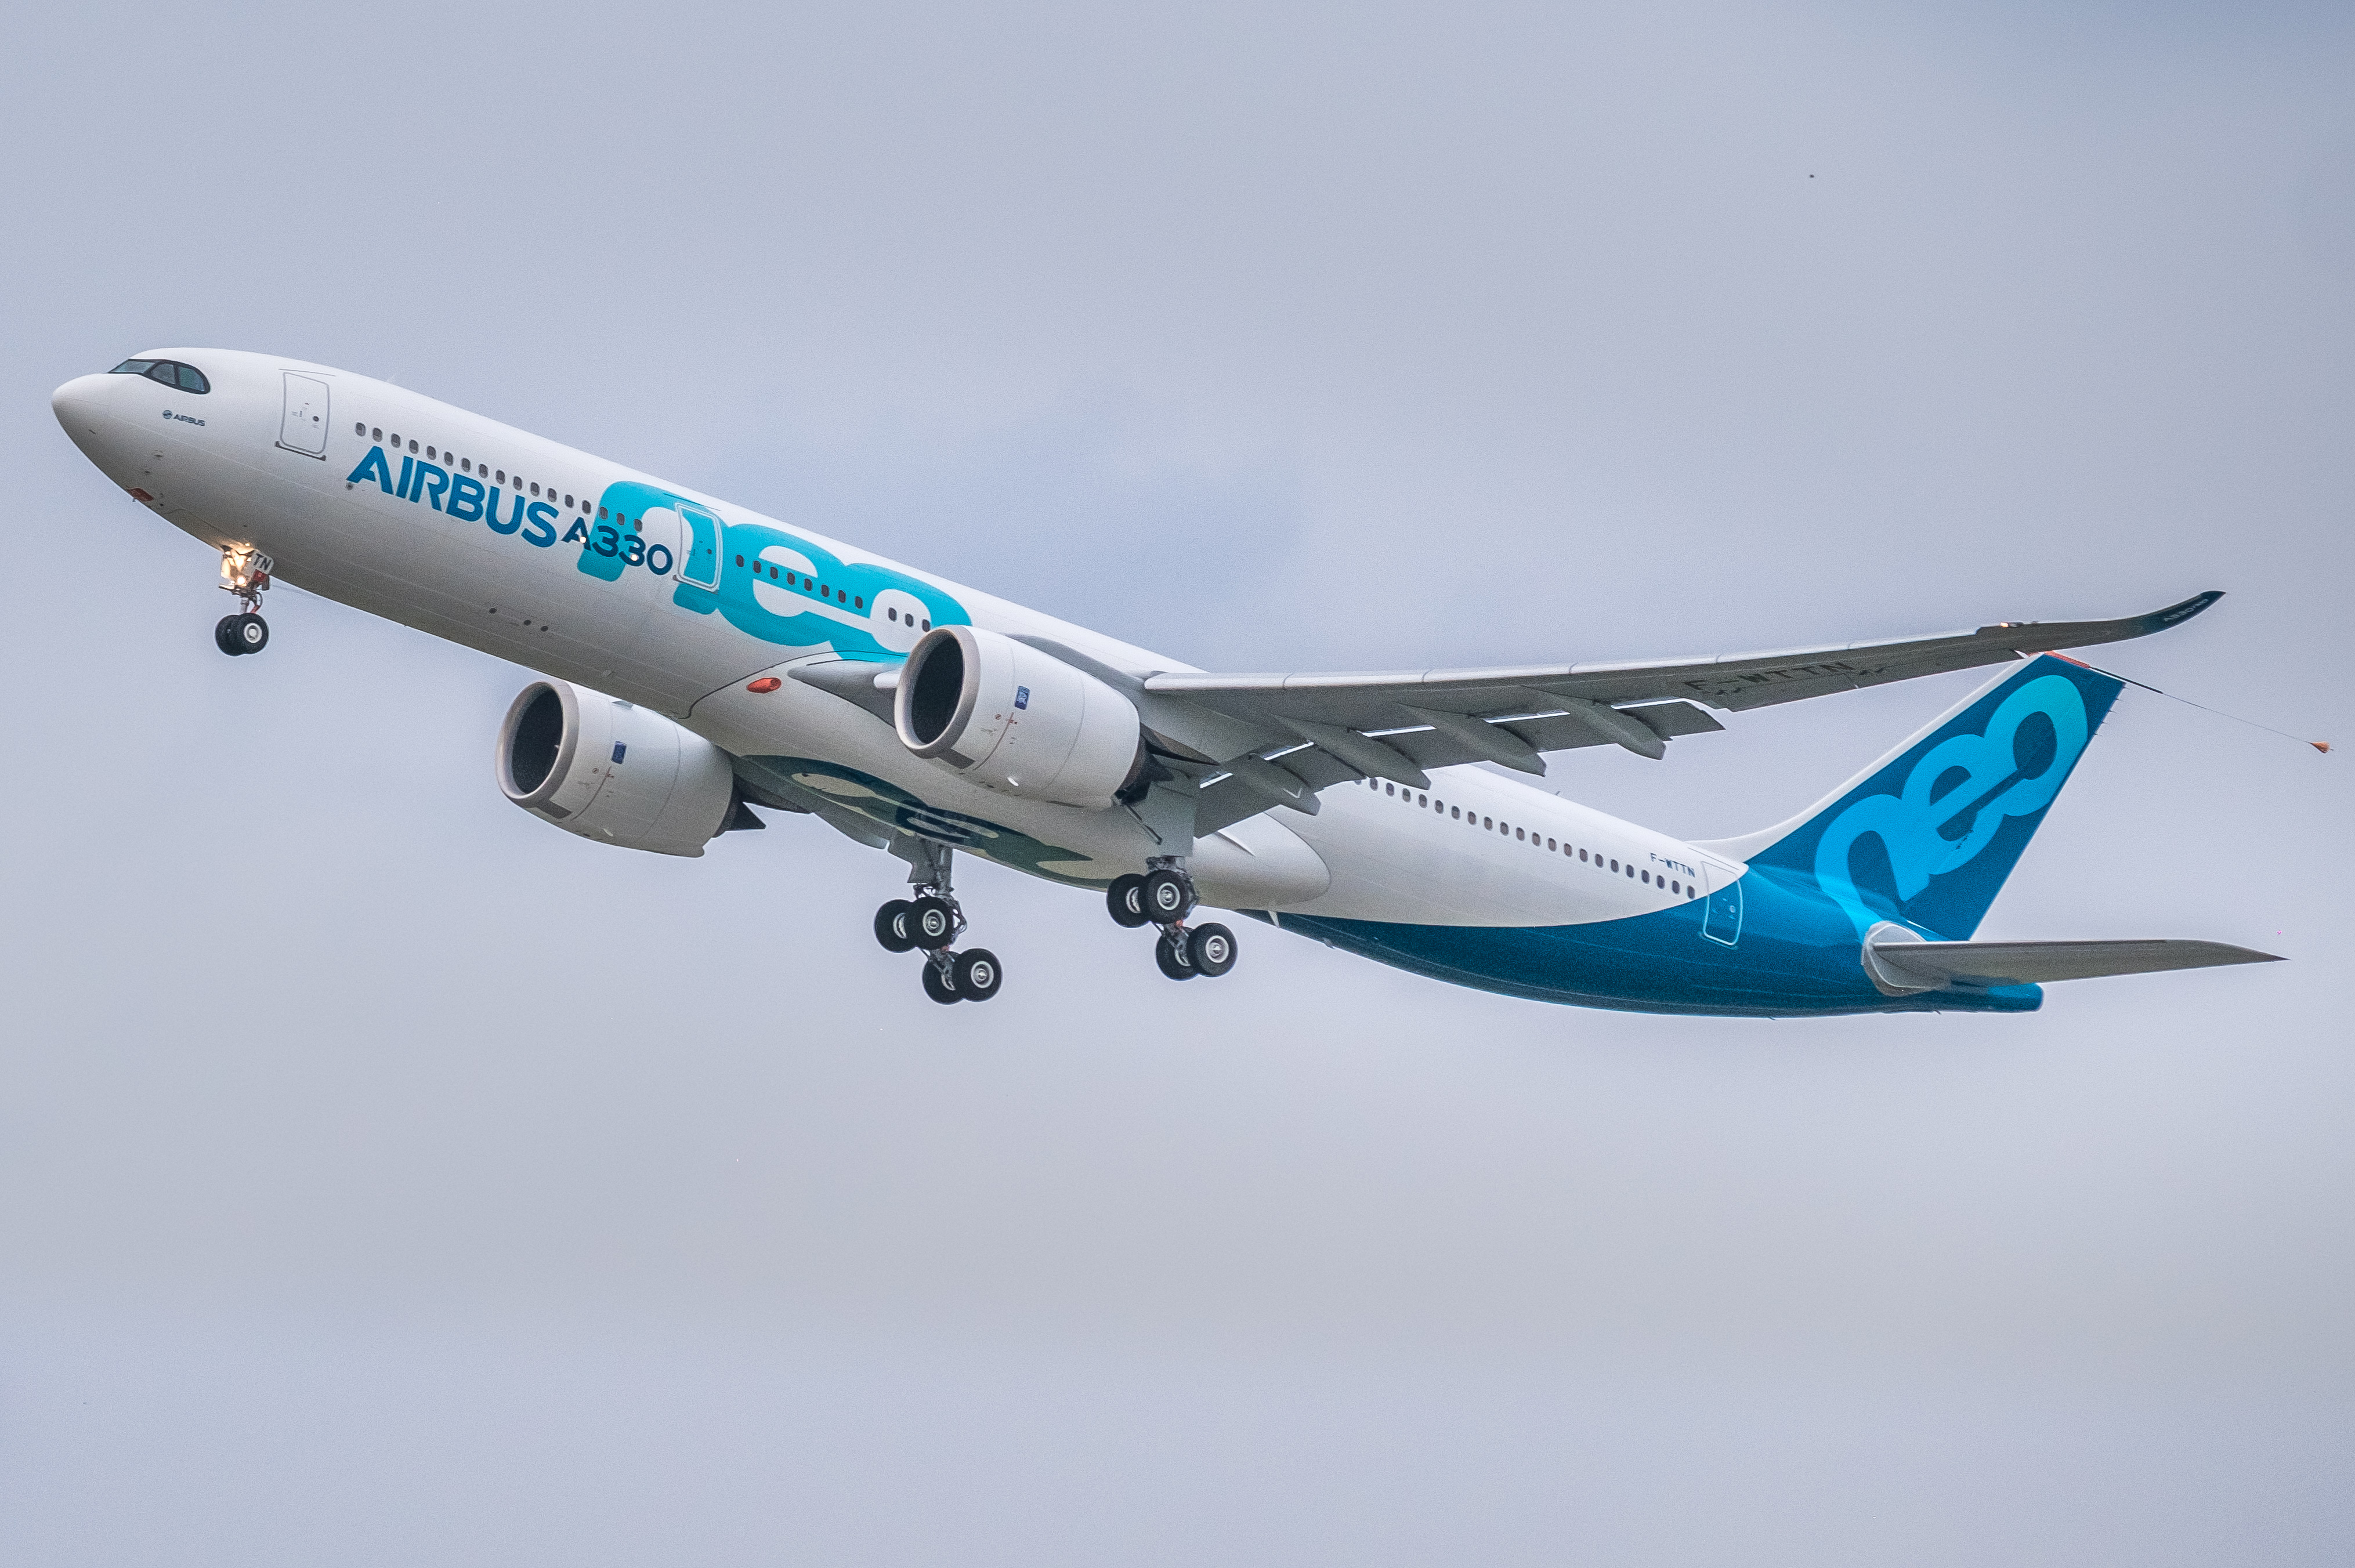 Airbus_A330neo_first_take-off_(cropped)